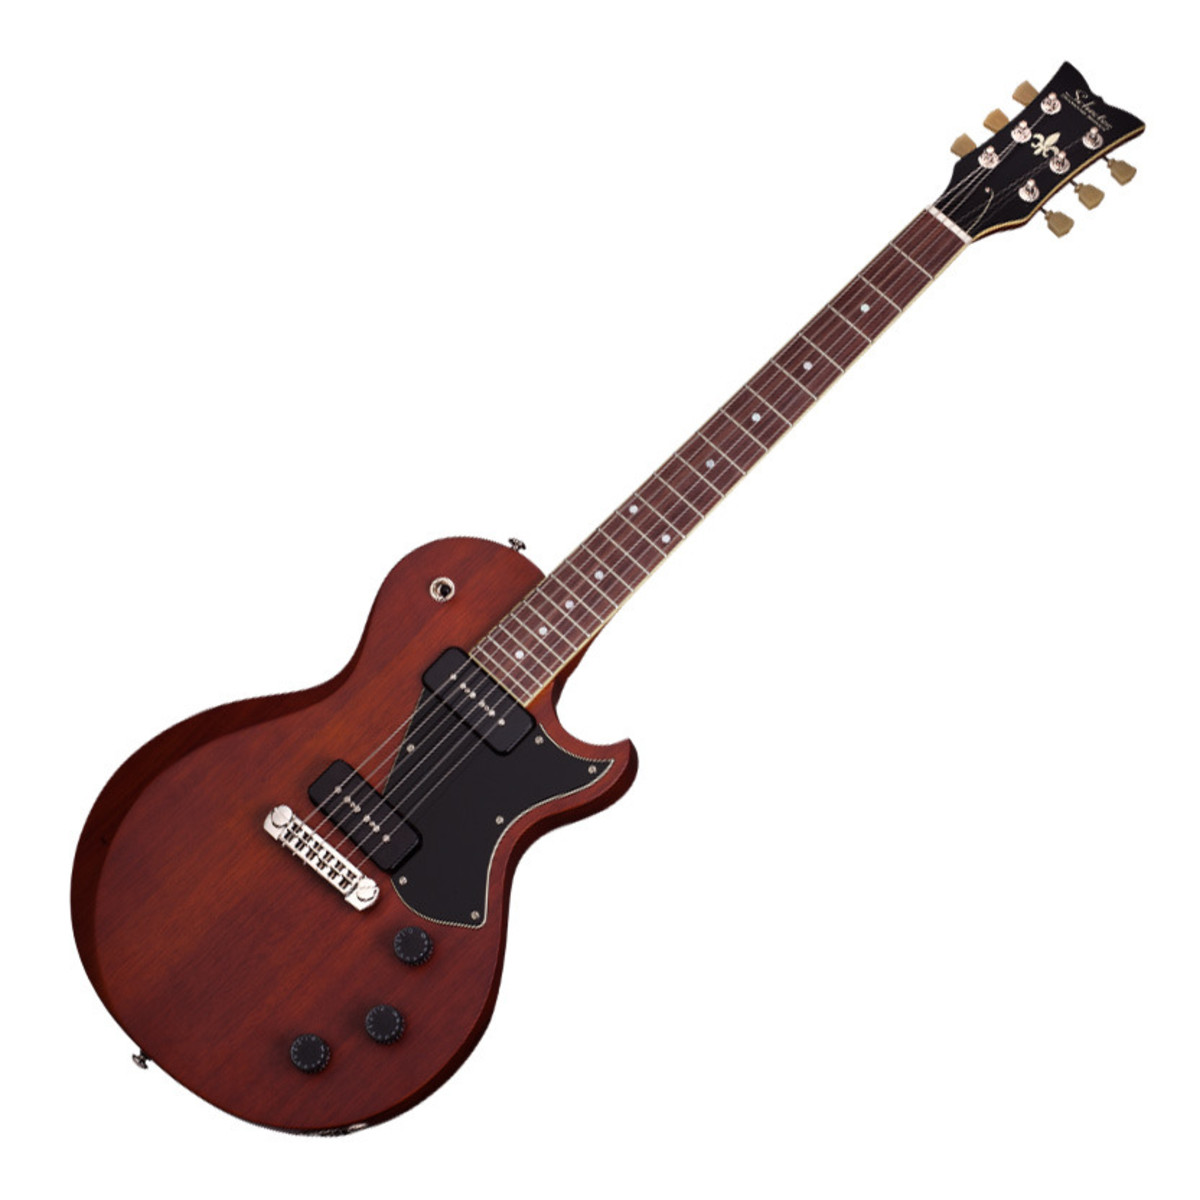 schecter solo ii special electric guitar walnut pearl at gear4music. Black Bedroom Furniture Sets. Home Design Ideas